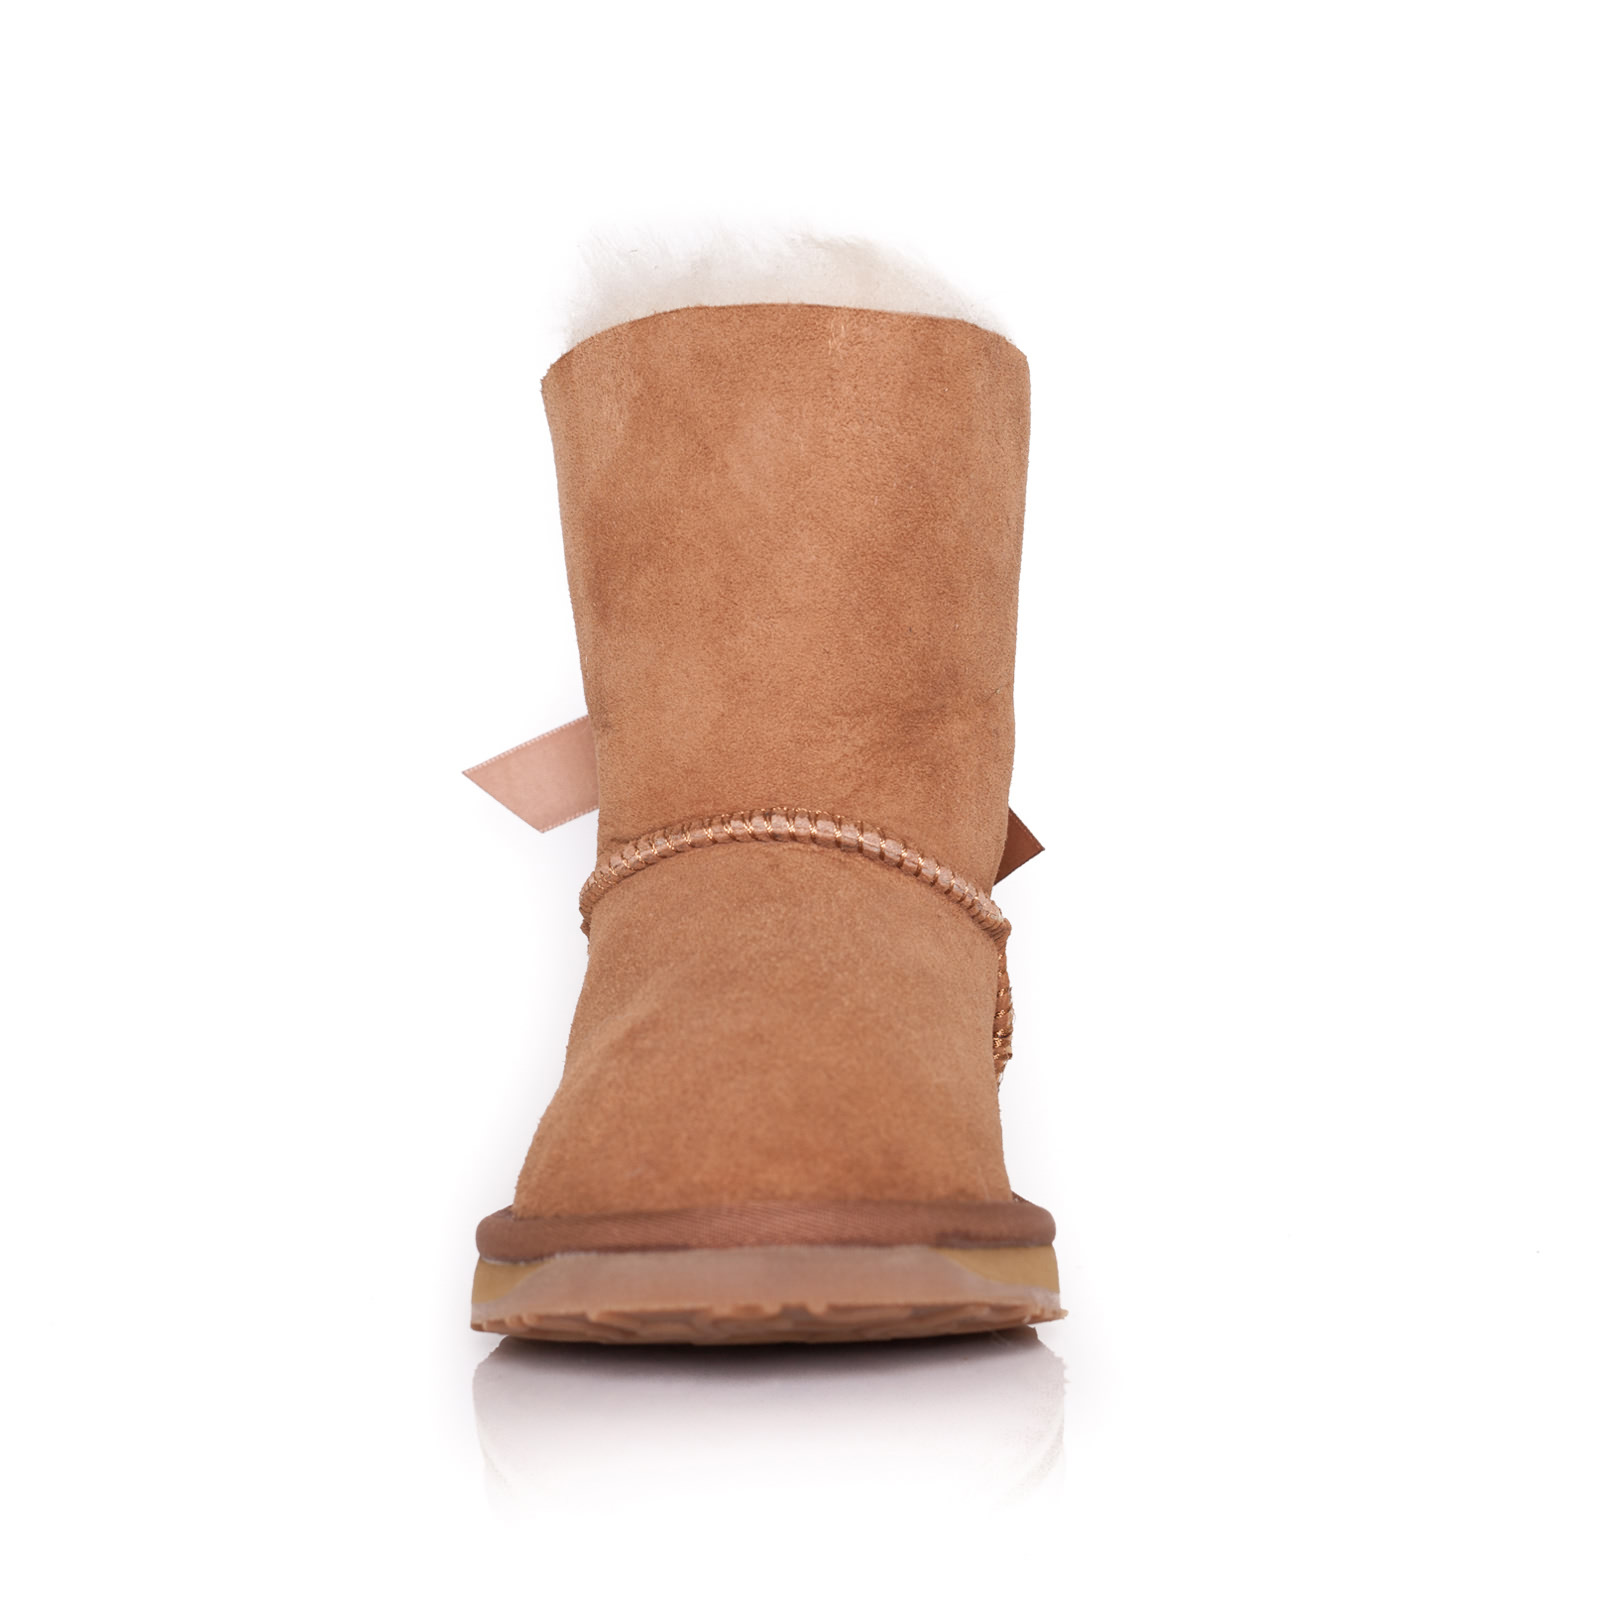 f4a71d1b882 Zalando Gutschein Ugg Boots - cheap watches mgc-gas.com